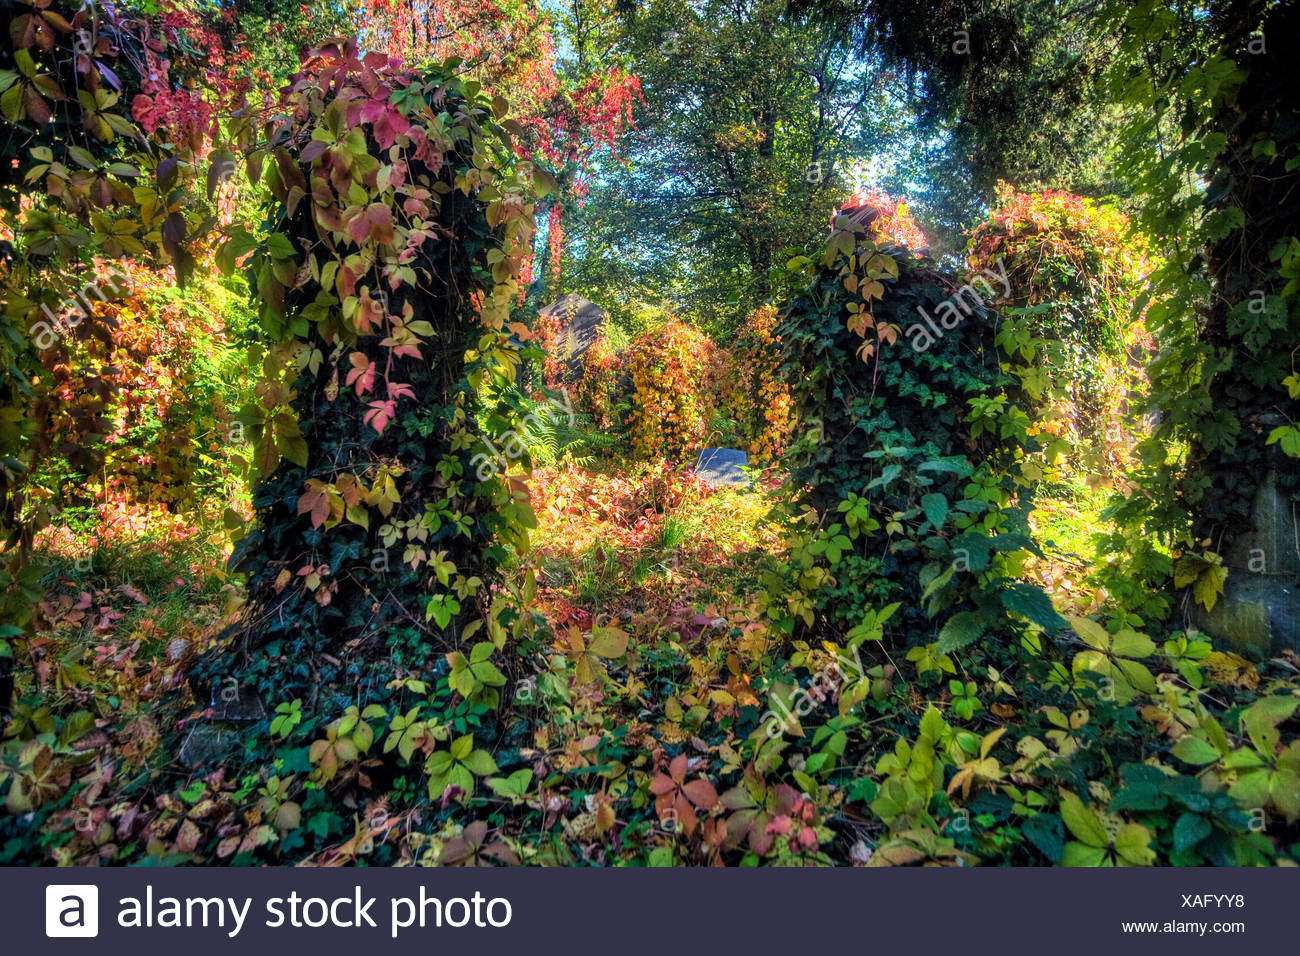 autumn at the central cemetery, overgrown gravestones, Austria, Vienna - Stock Image